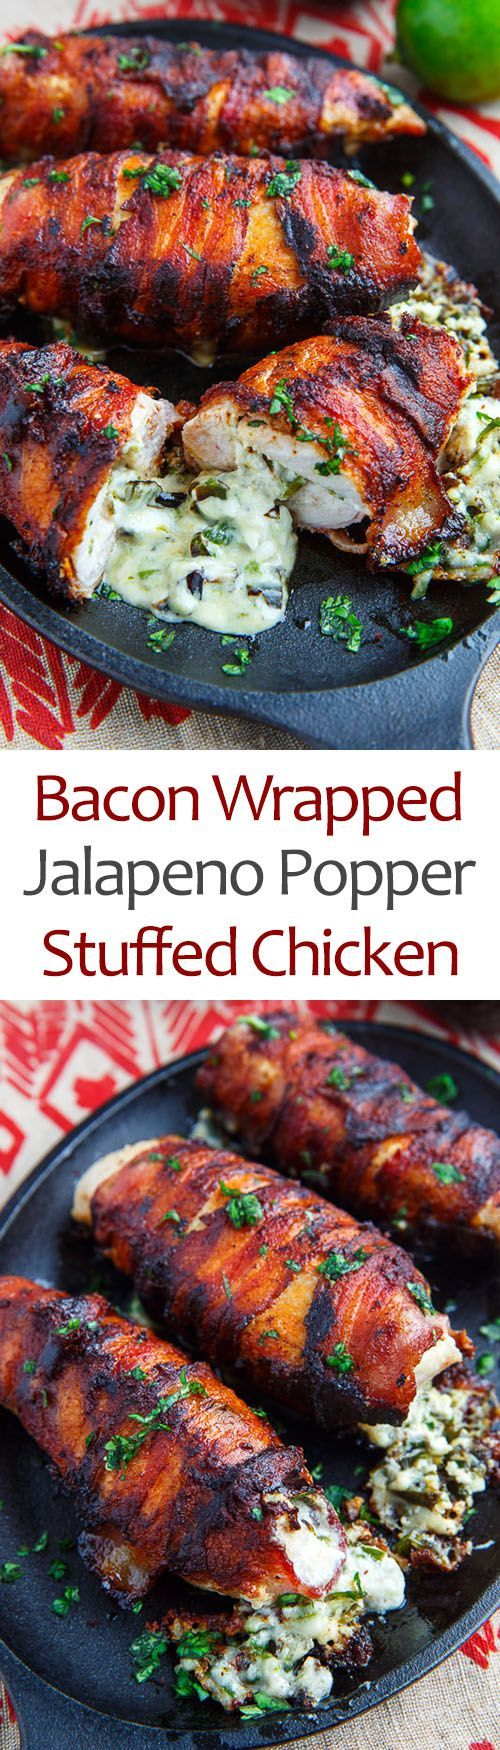 Bacon Wrapped Jalapeno Popper Stuffed Chicken recipe! Juicy chicken breasts wrapped in crispy bacon and stuffed full, to overflowing, with melted cheese and jalapeno peppers! whoa... just me or does this have it all!?! And its actually simple to make! #chicken #bacon #jalapenopopper